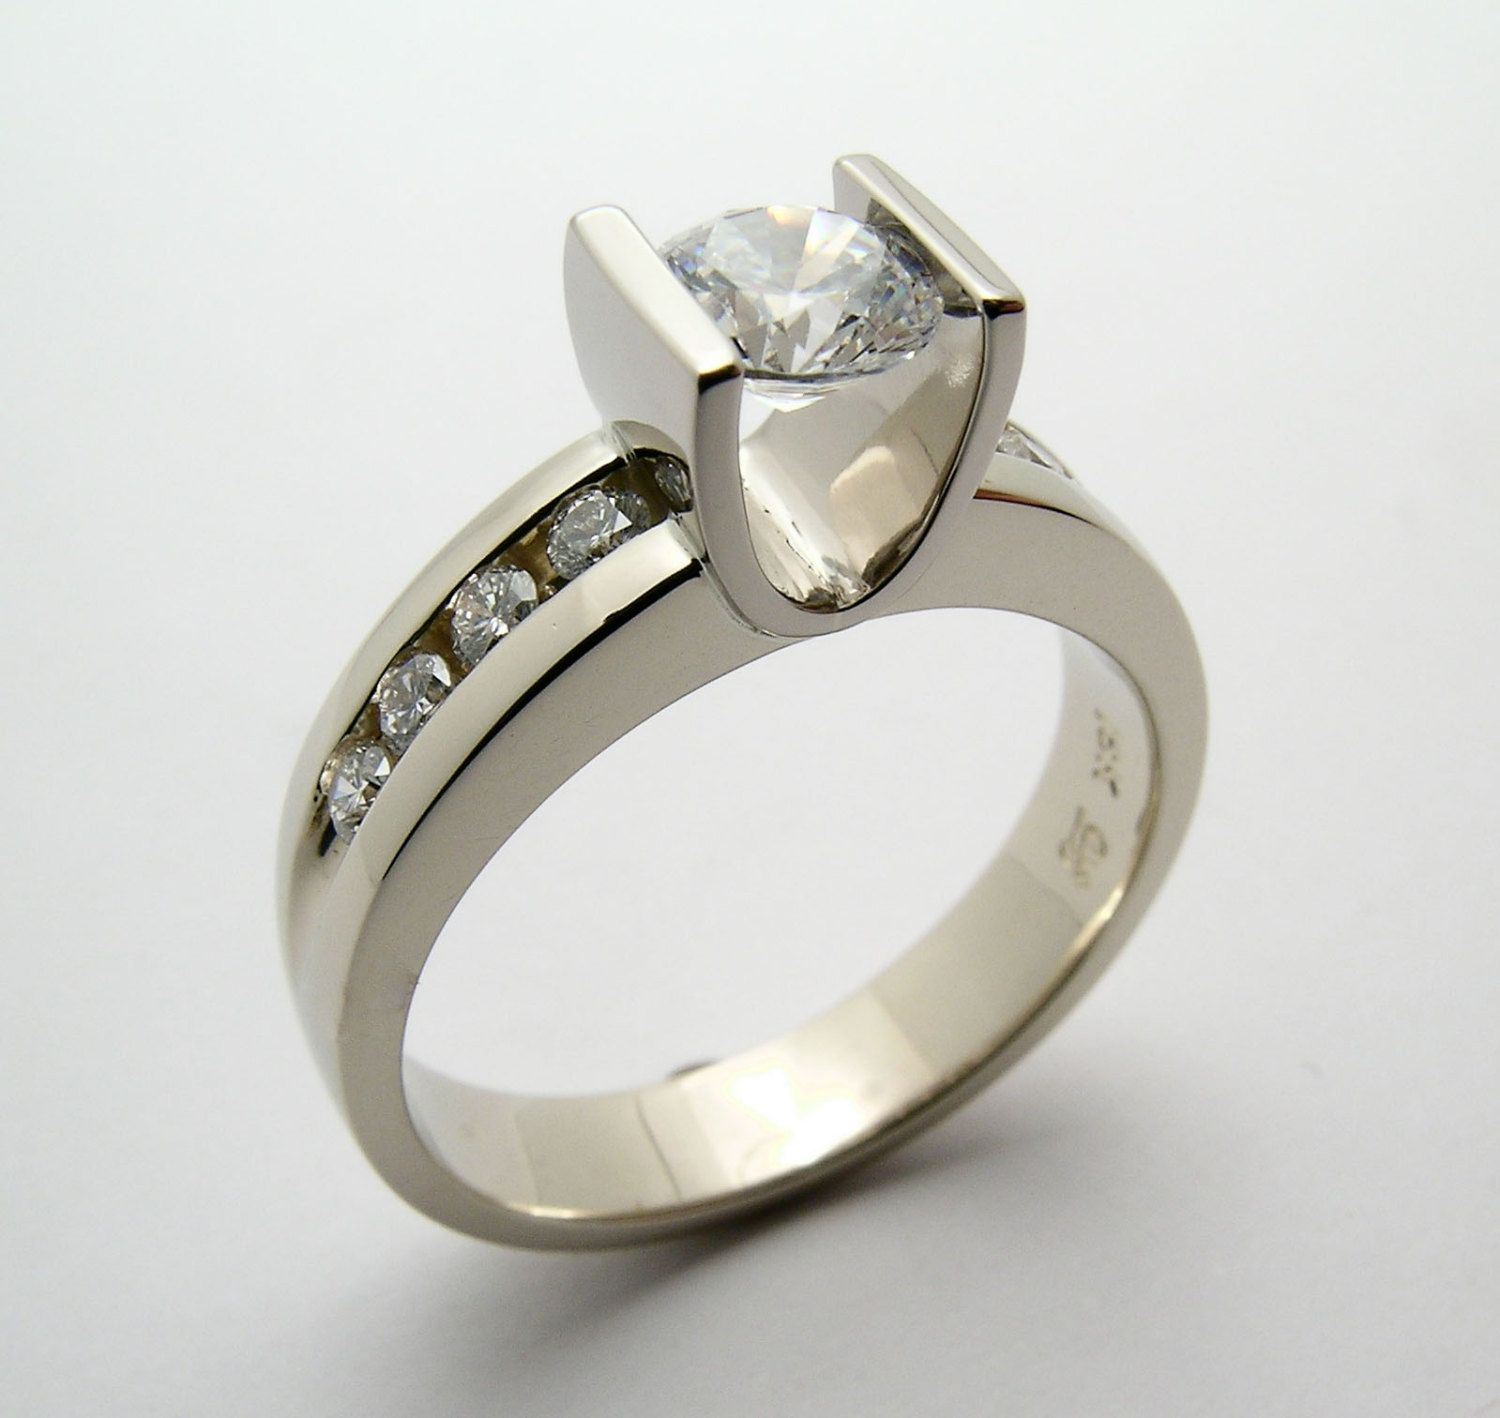 2/3 carat Canadian Diamond Channel Set in 18k White Gold